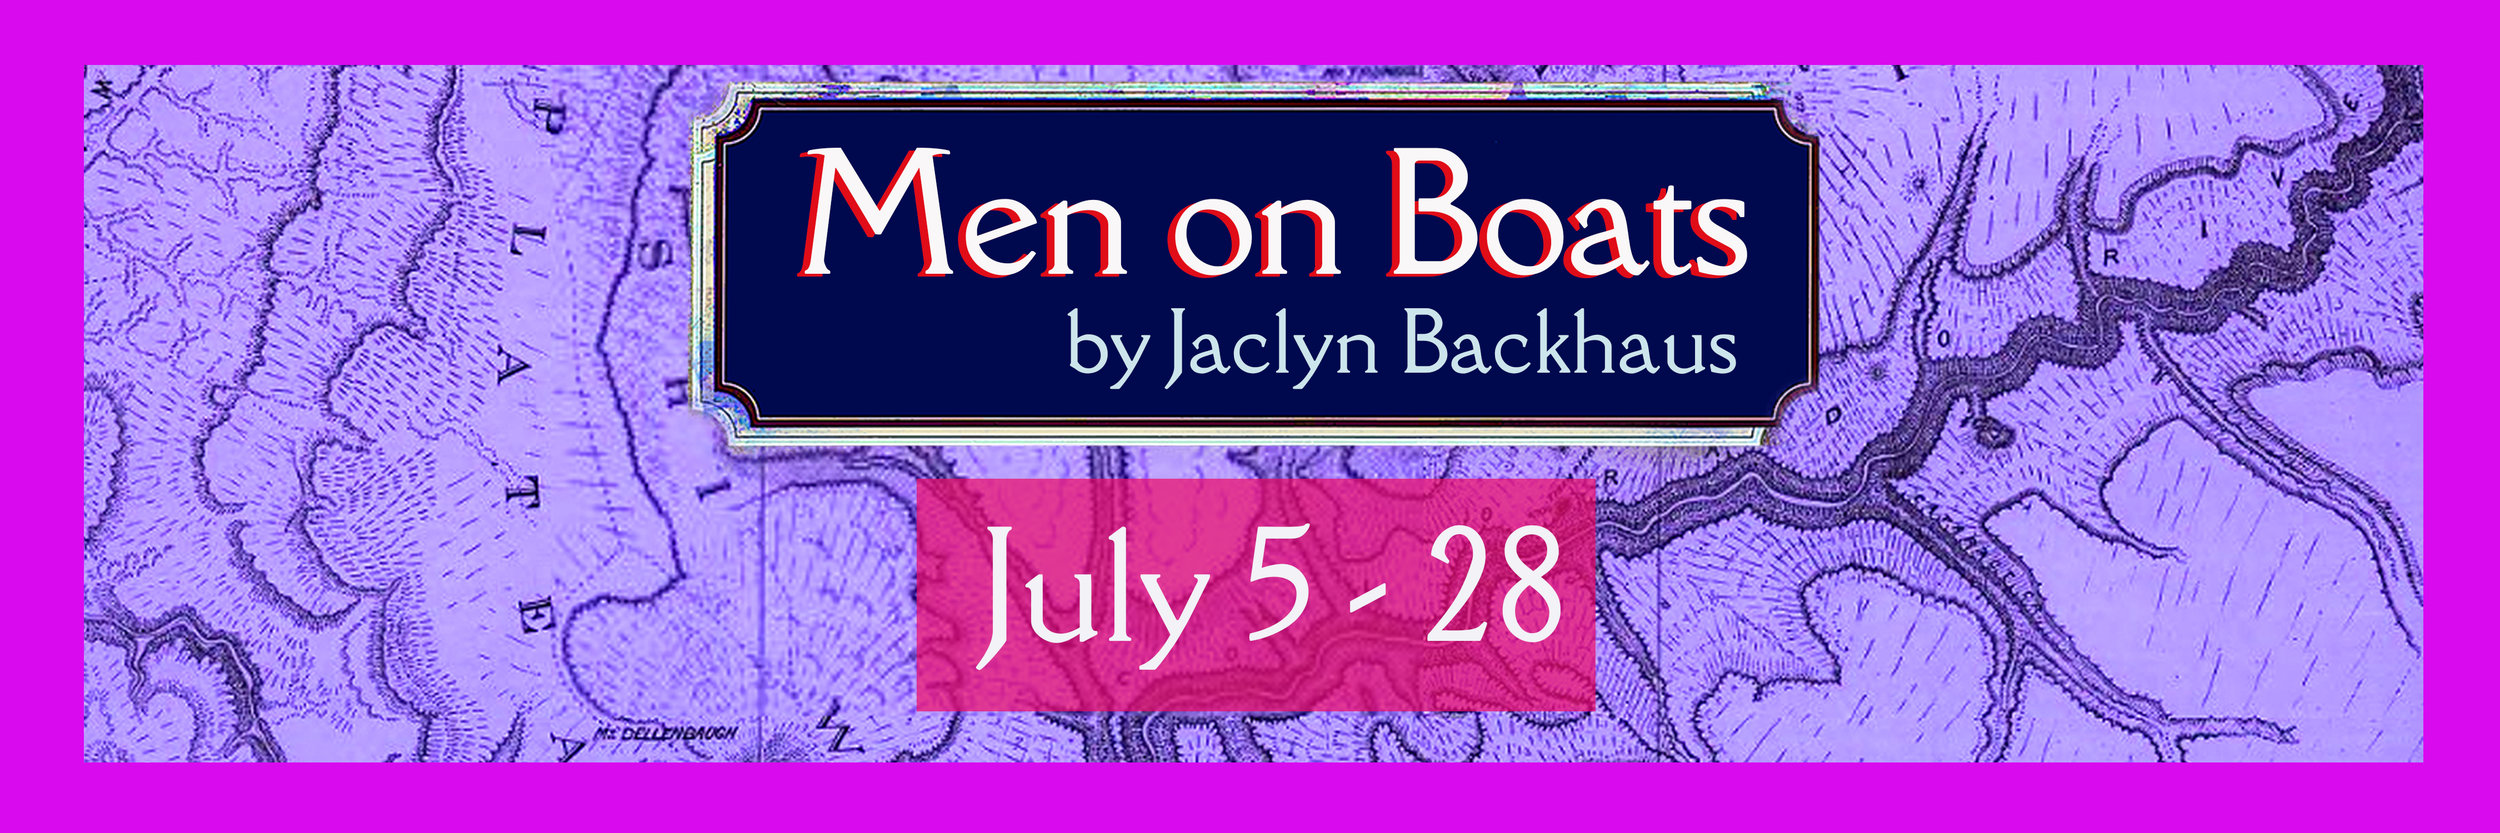 Men_on_Boats_Banner_Draft_A_Flat.jpg